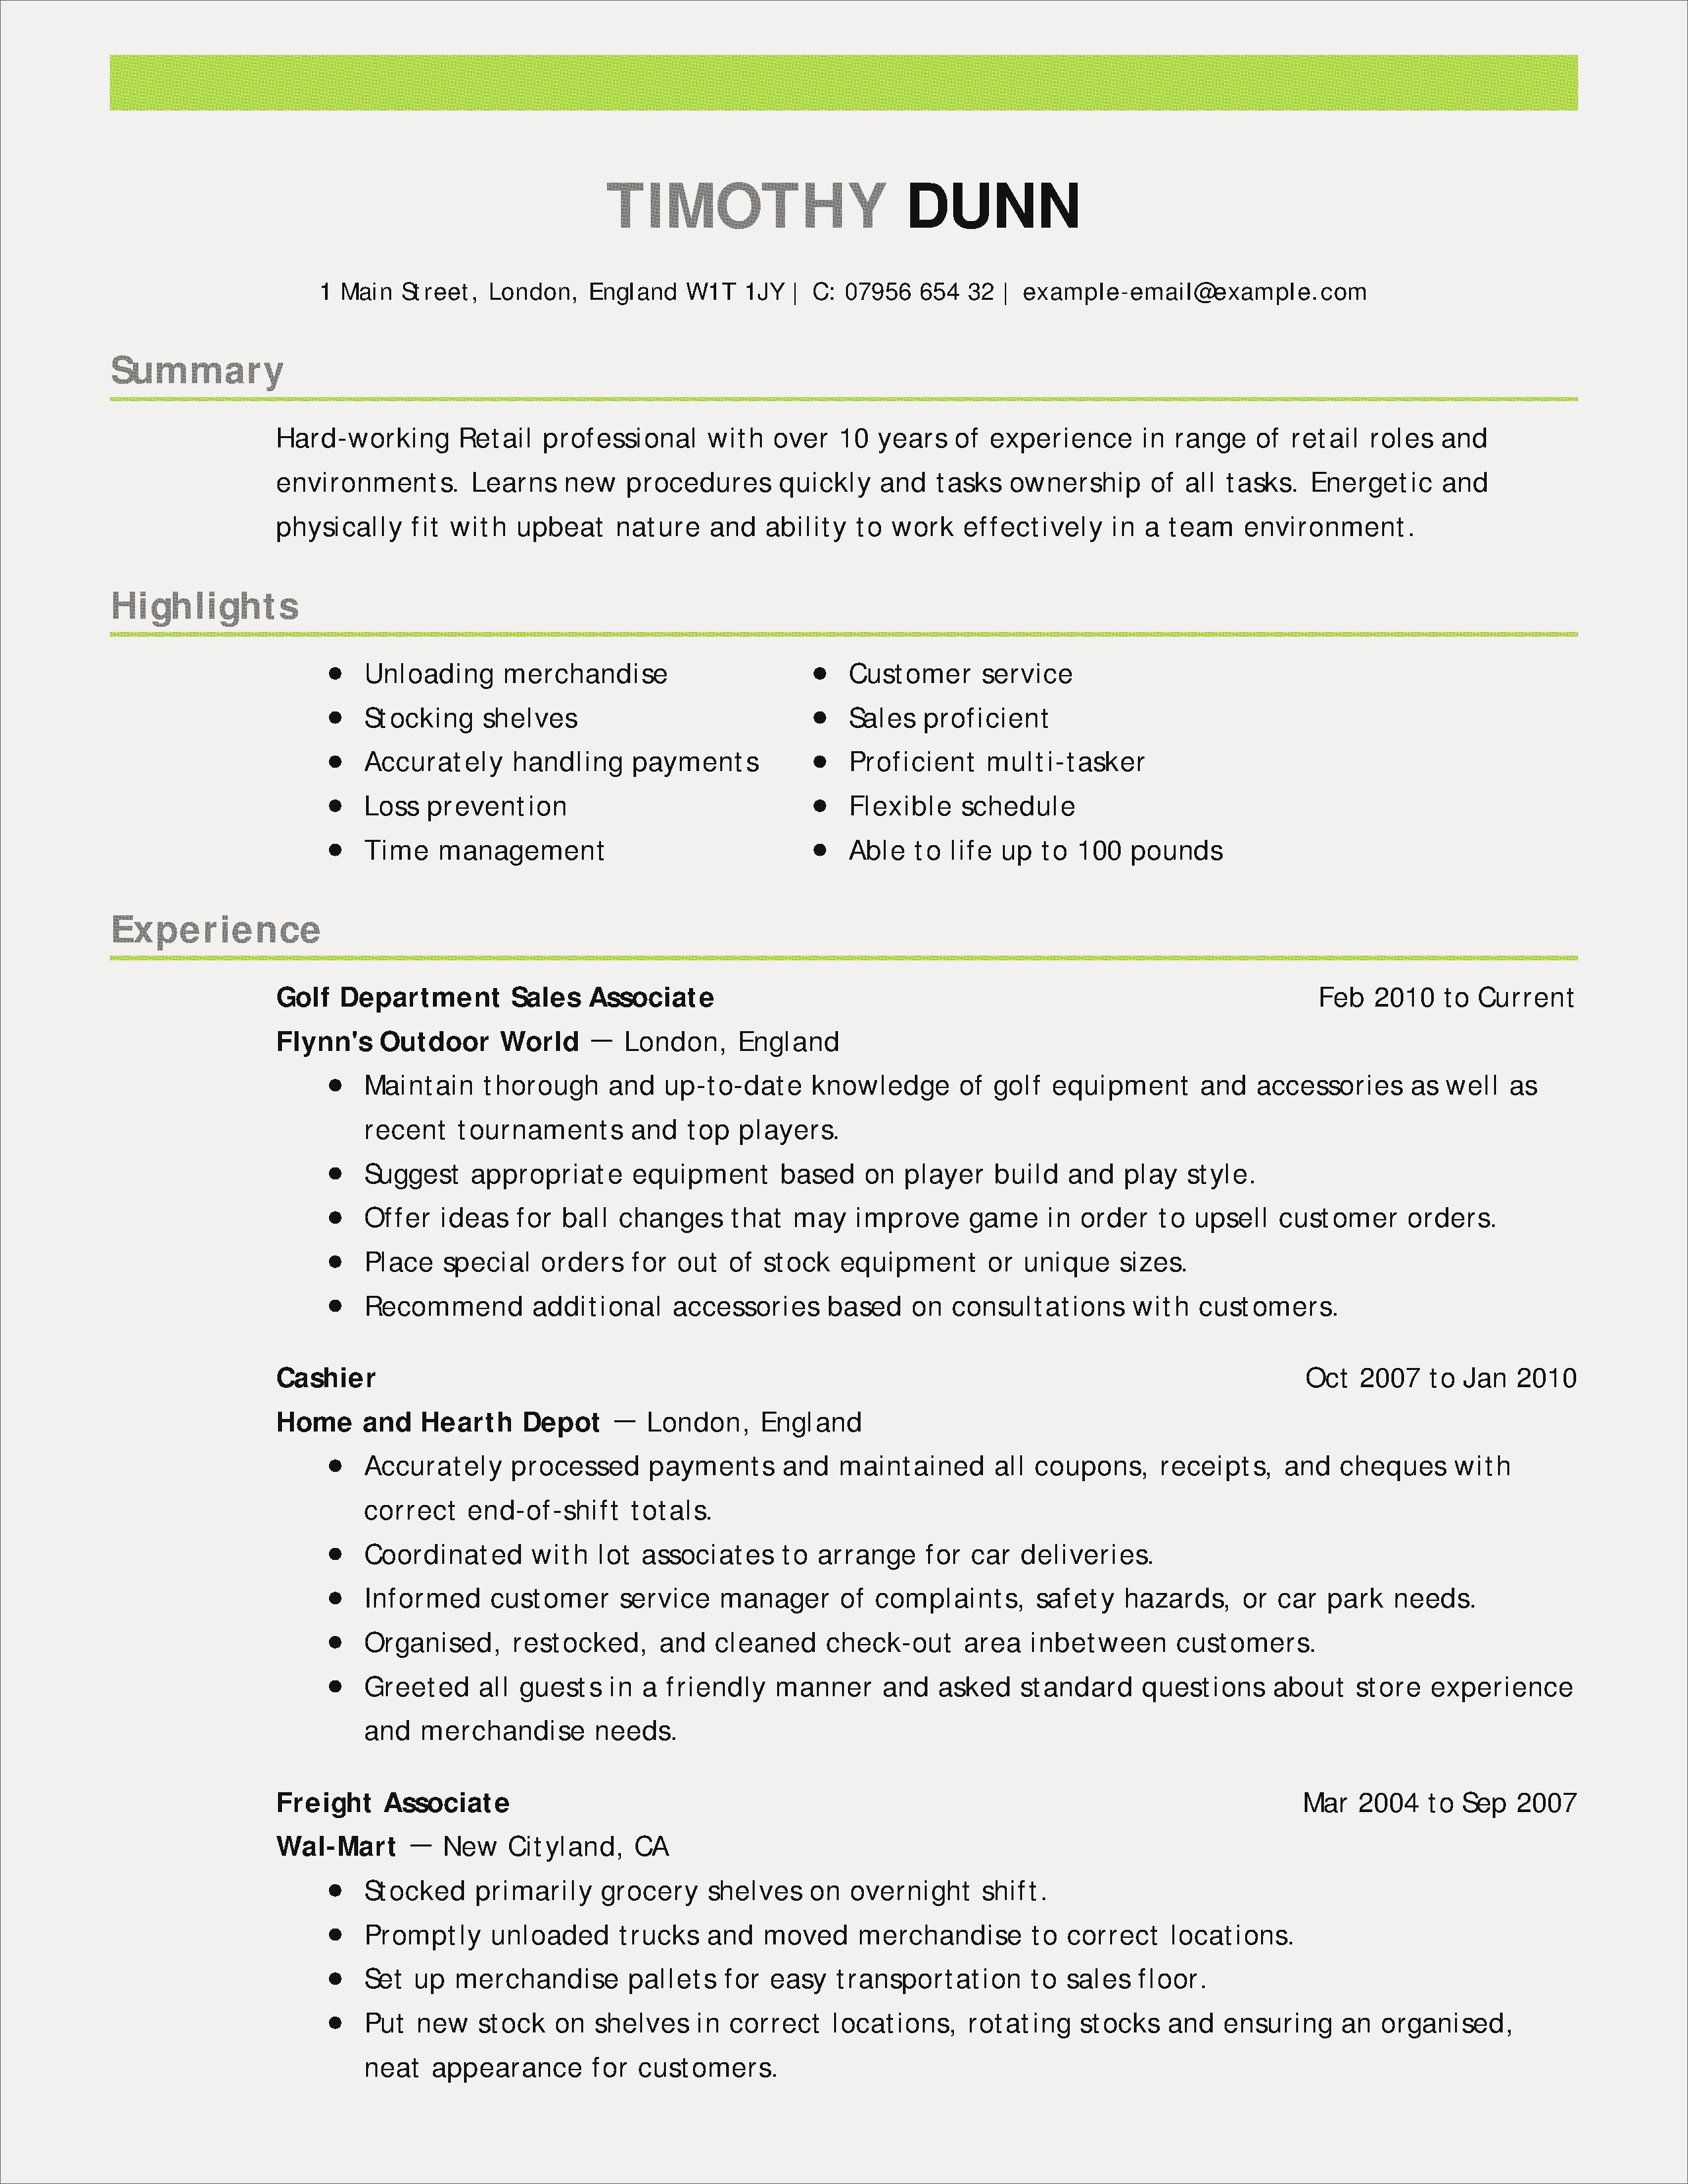 Making A Resume - How to Write A Resume Experience New Restaurant Resume Sample Unique